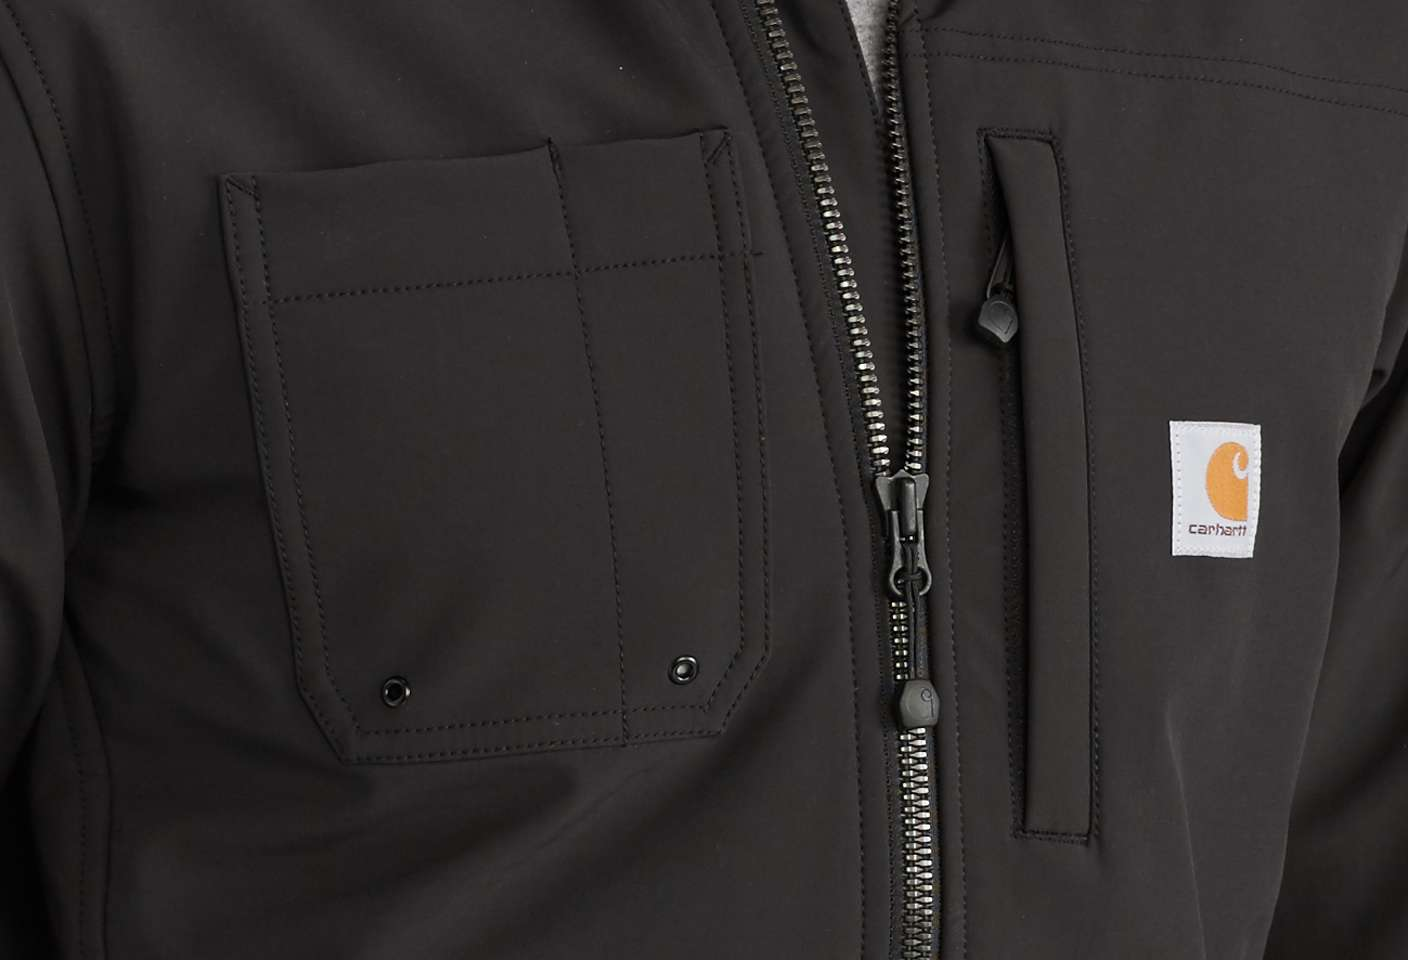 Chest pocket with pen stall keeps your pen close